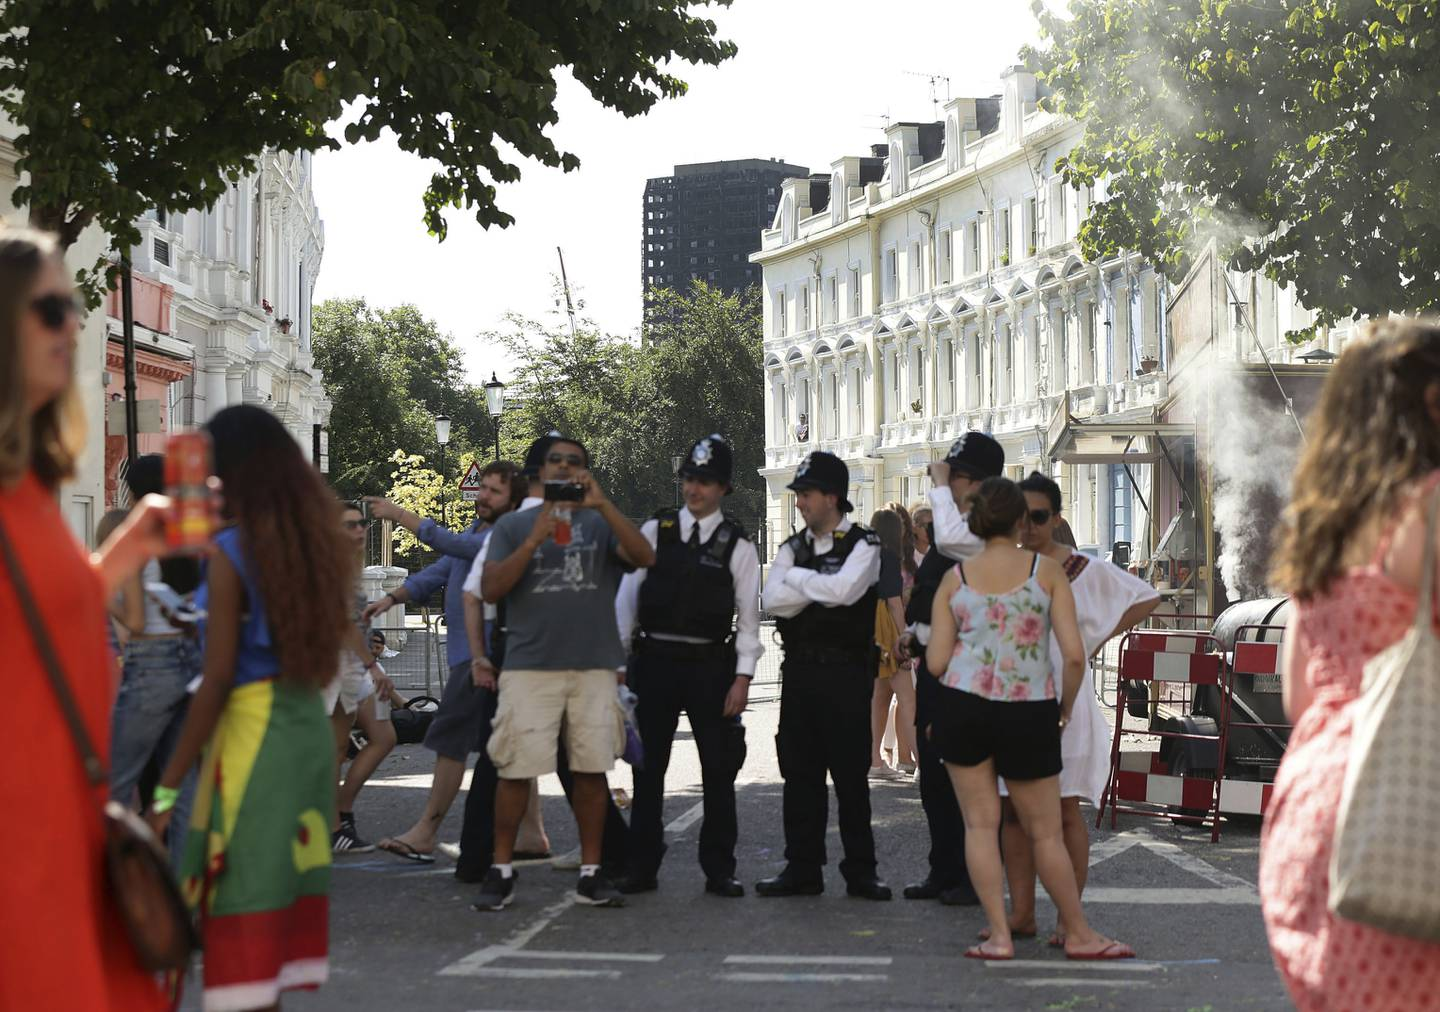 Police secure the area, blocking the road towards the burned out Grenfell Tower apartment block, during the Family Day at the Notting Hill Carnival in west London, Sunday Aug. 27, 2017. The police presence in London has been stepped up because of the holiday weekend and the annual Notting Hill Carnival, a busy weekend street festival that attracts huge crowds. (Yui Mok/PA via AP)